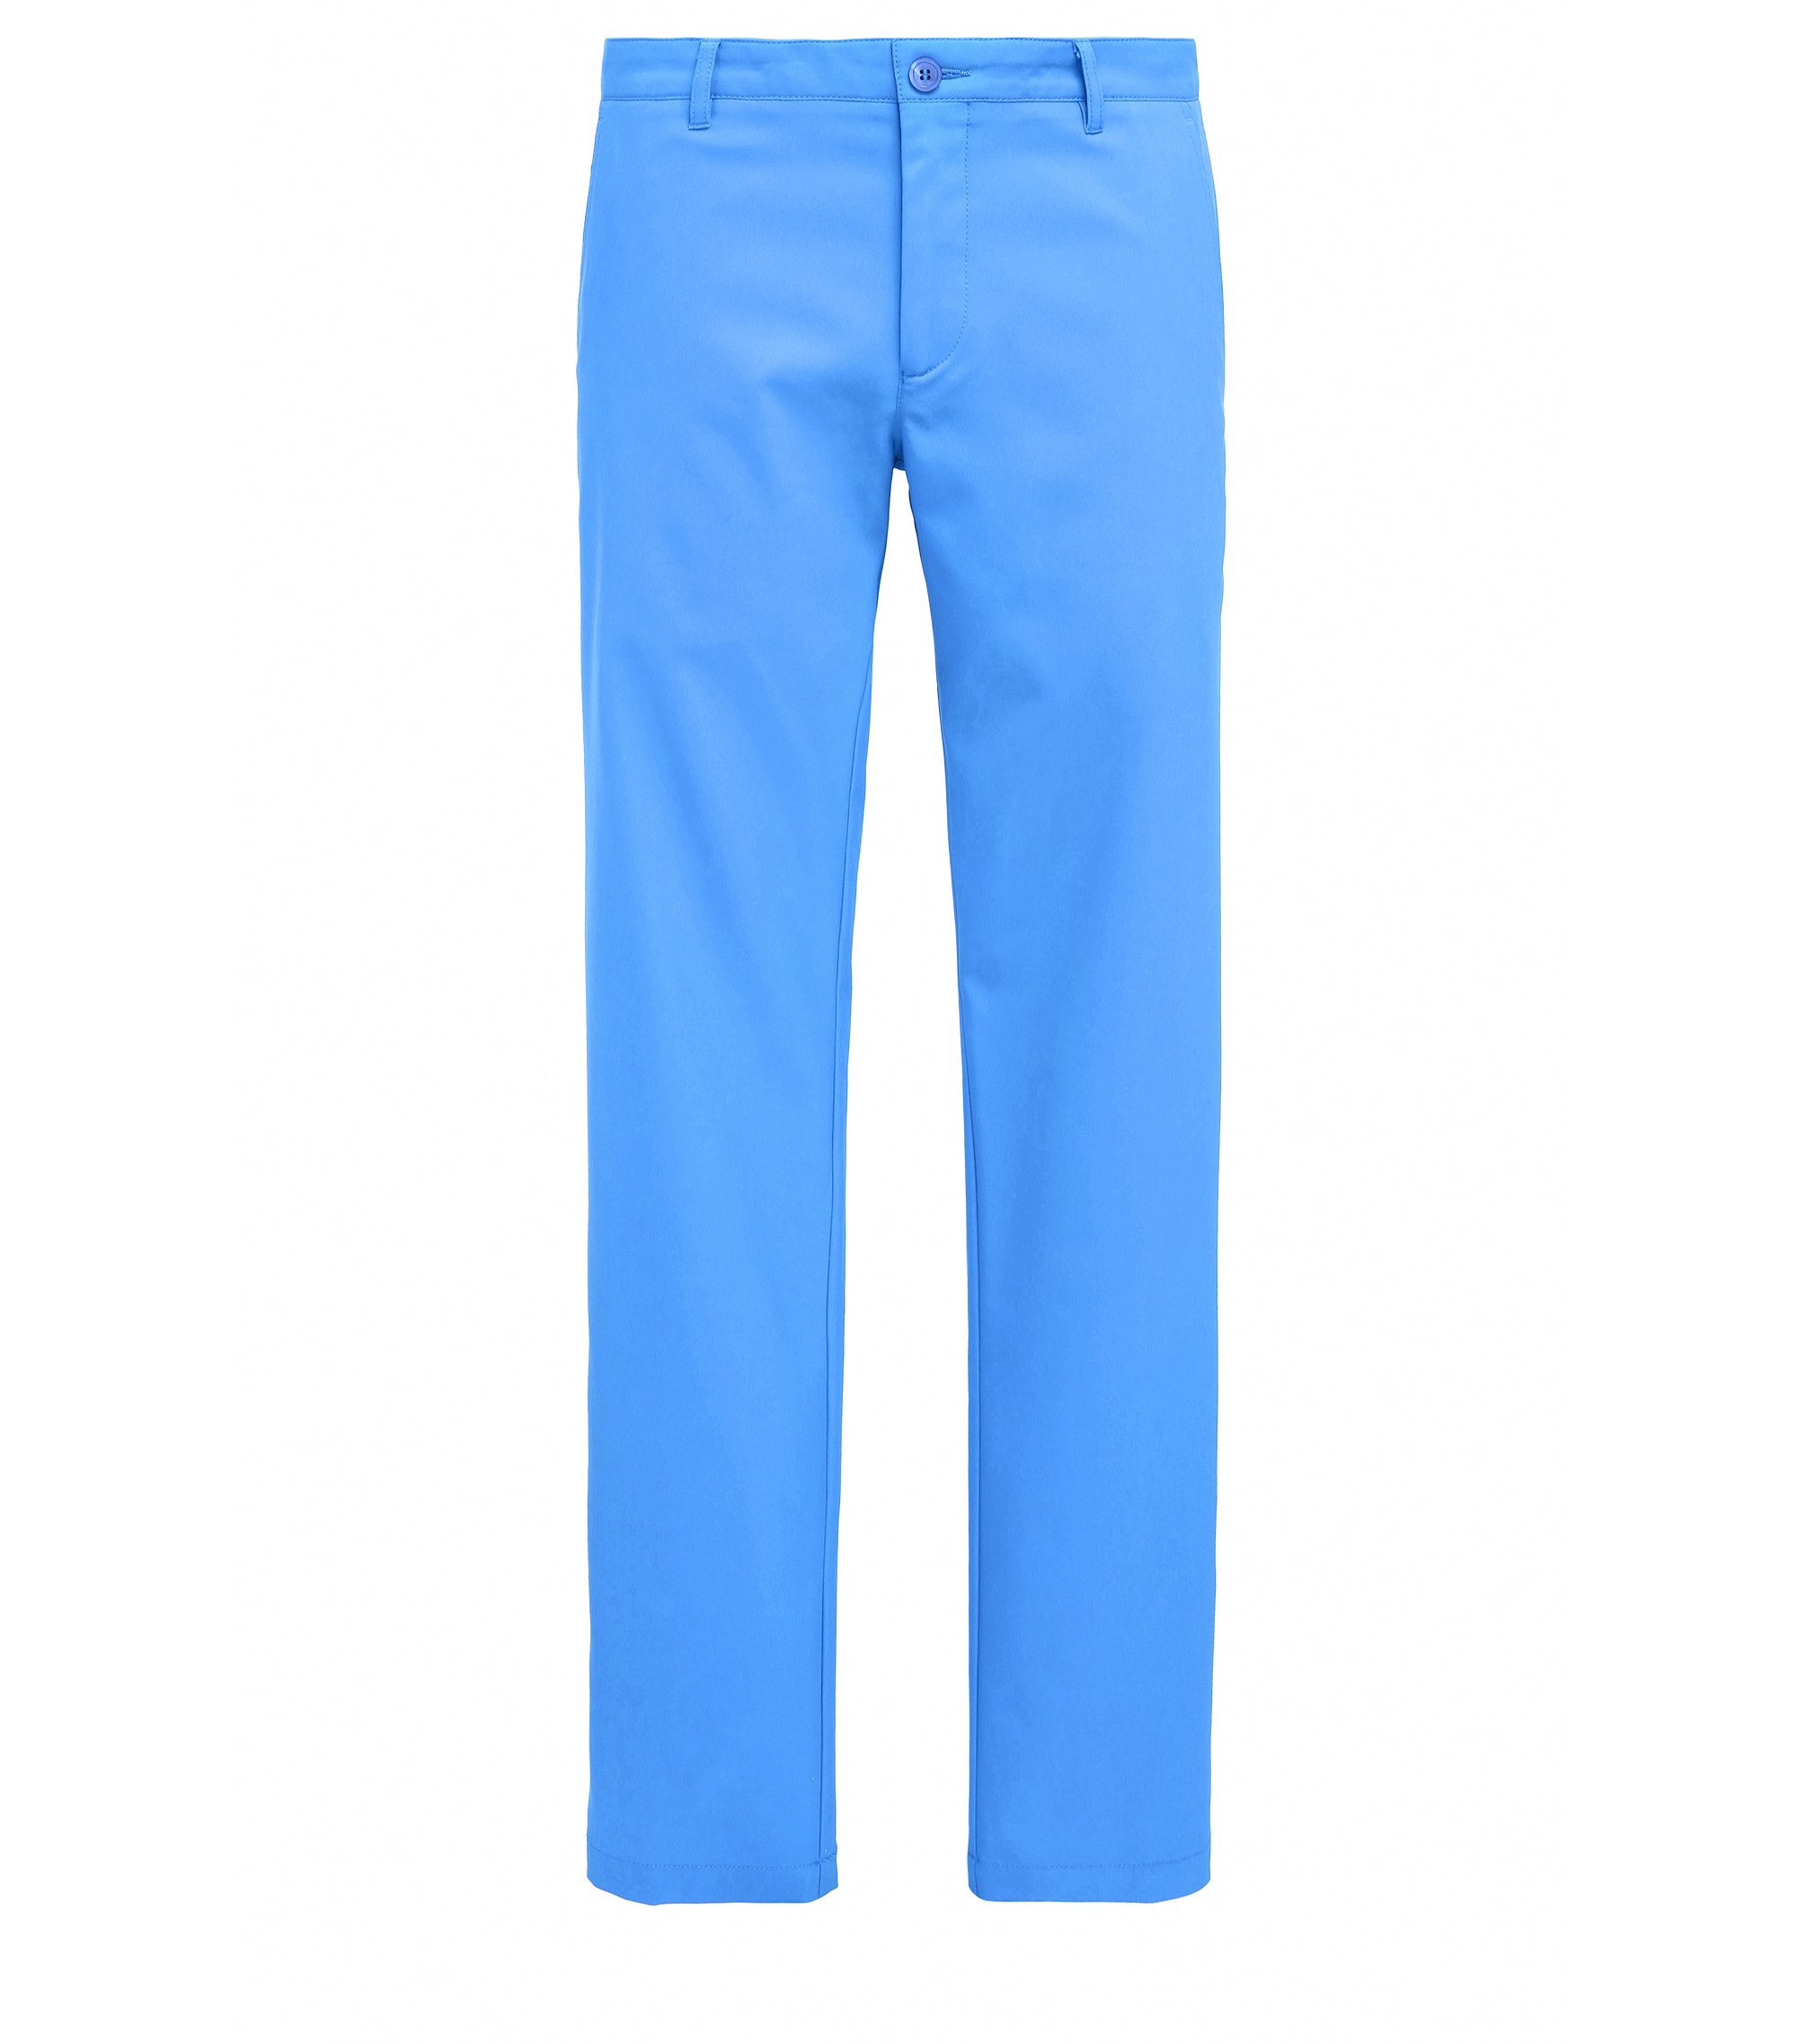 Pantaloni da golf slim fit in twill tecnico, Blu